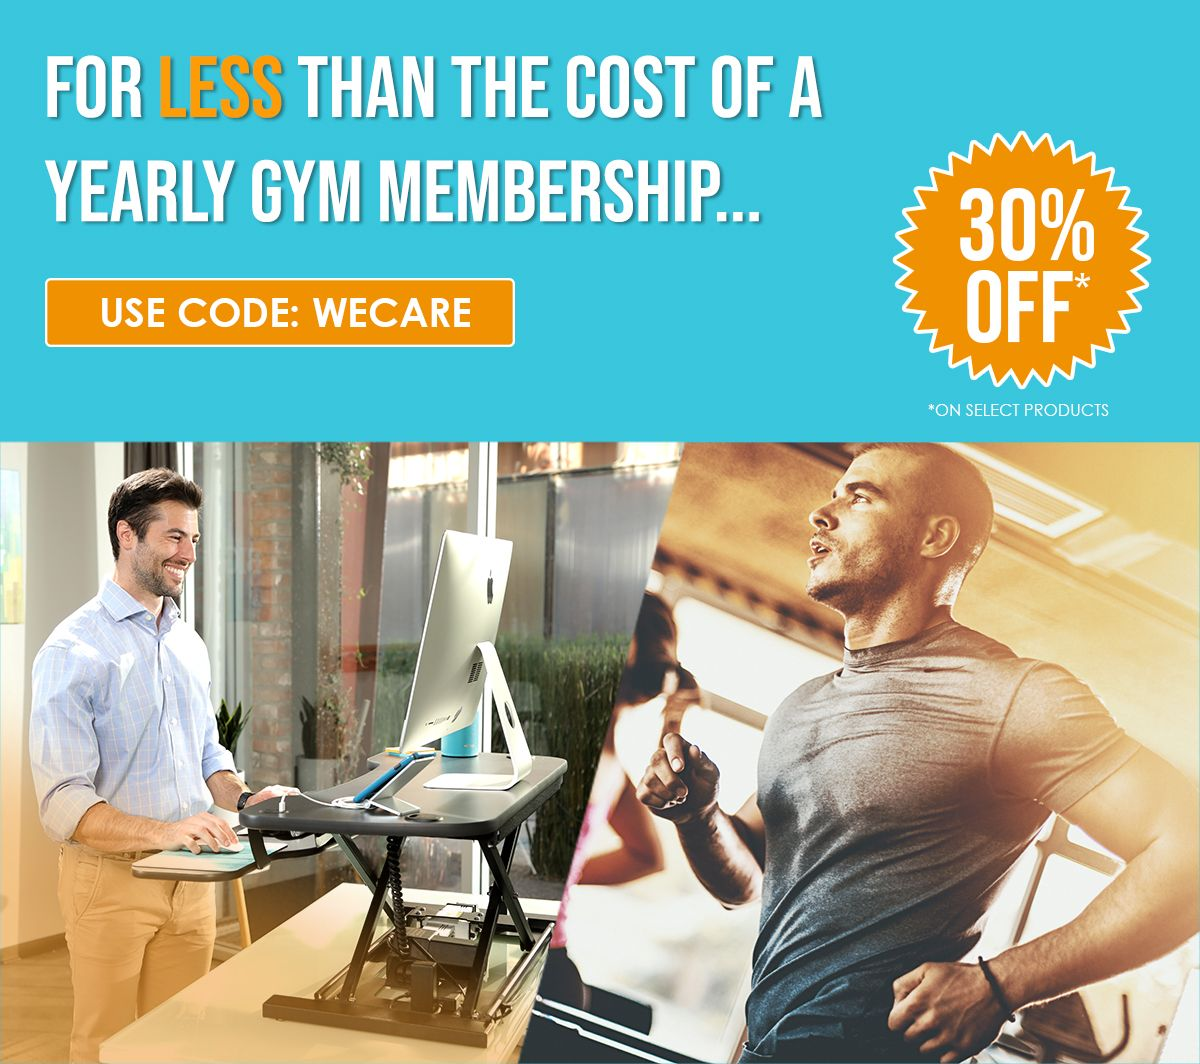 For less than the cost of a yearly gym membership...  30% OFF - USE CODE: WECARE